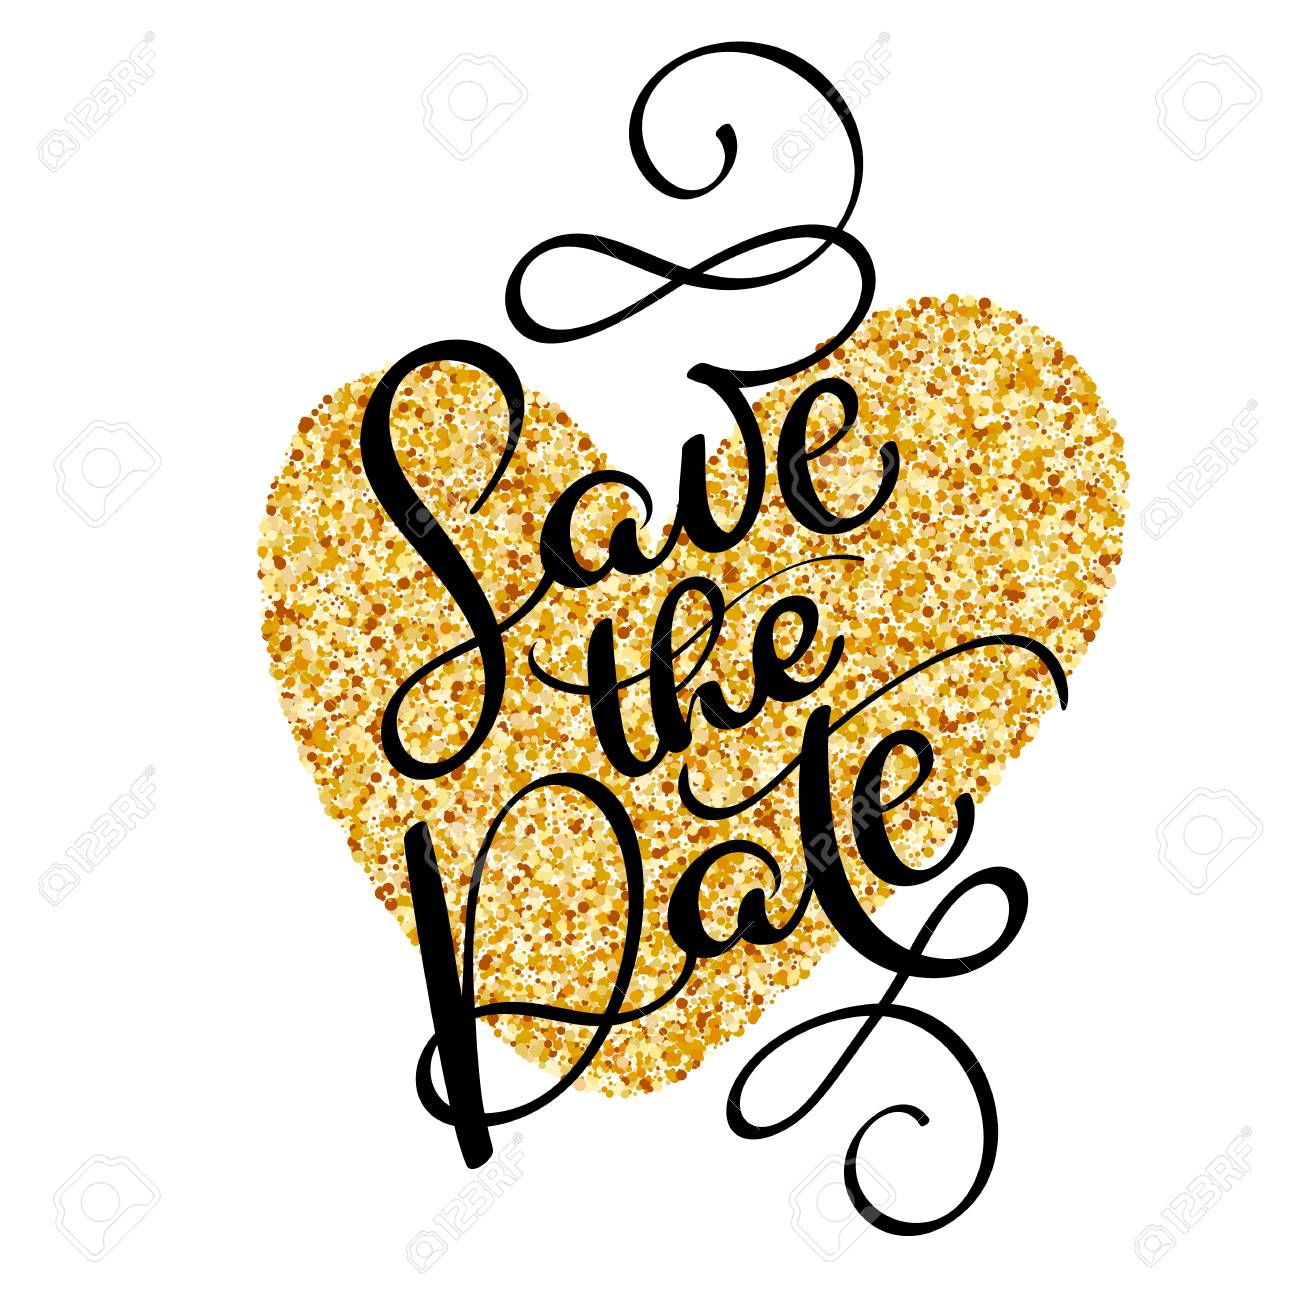 011065ac88b18 Save the date text calligraphy on a background of a golden heart...